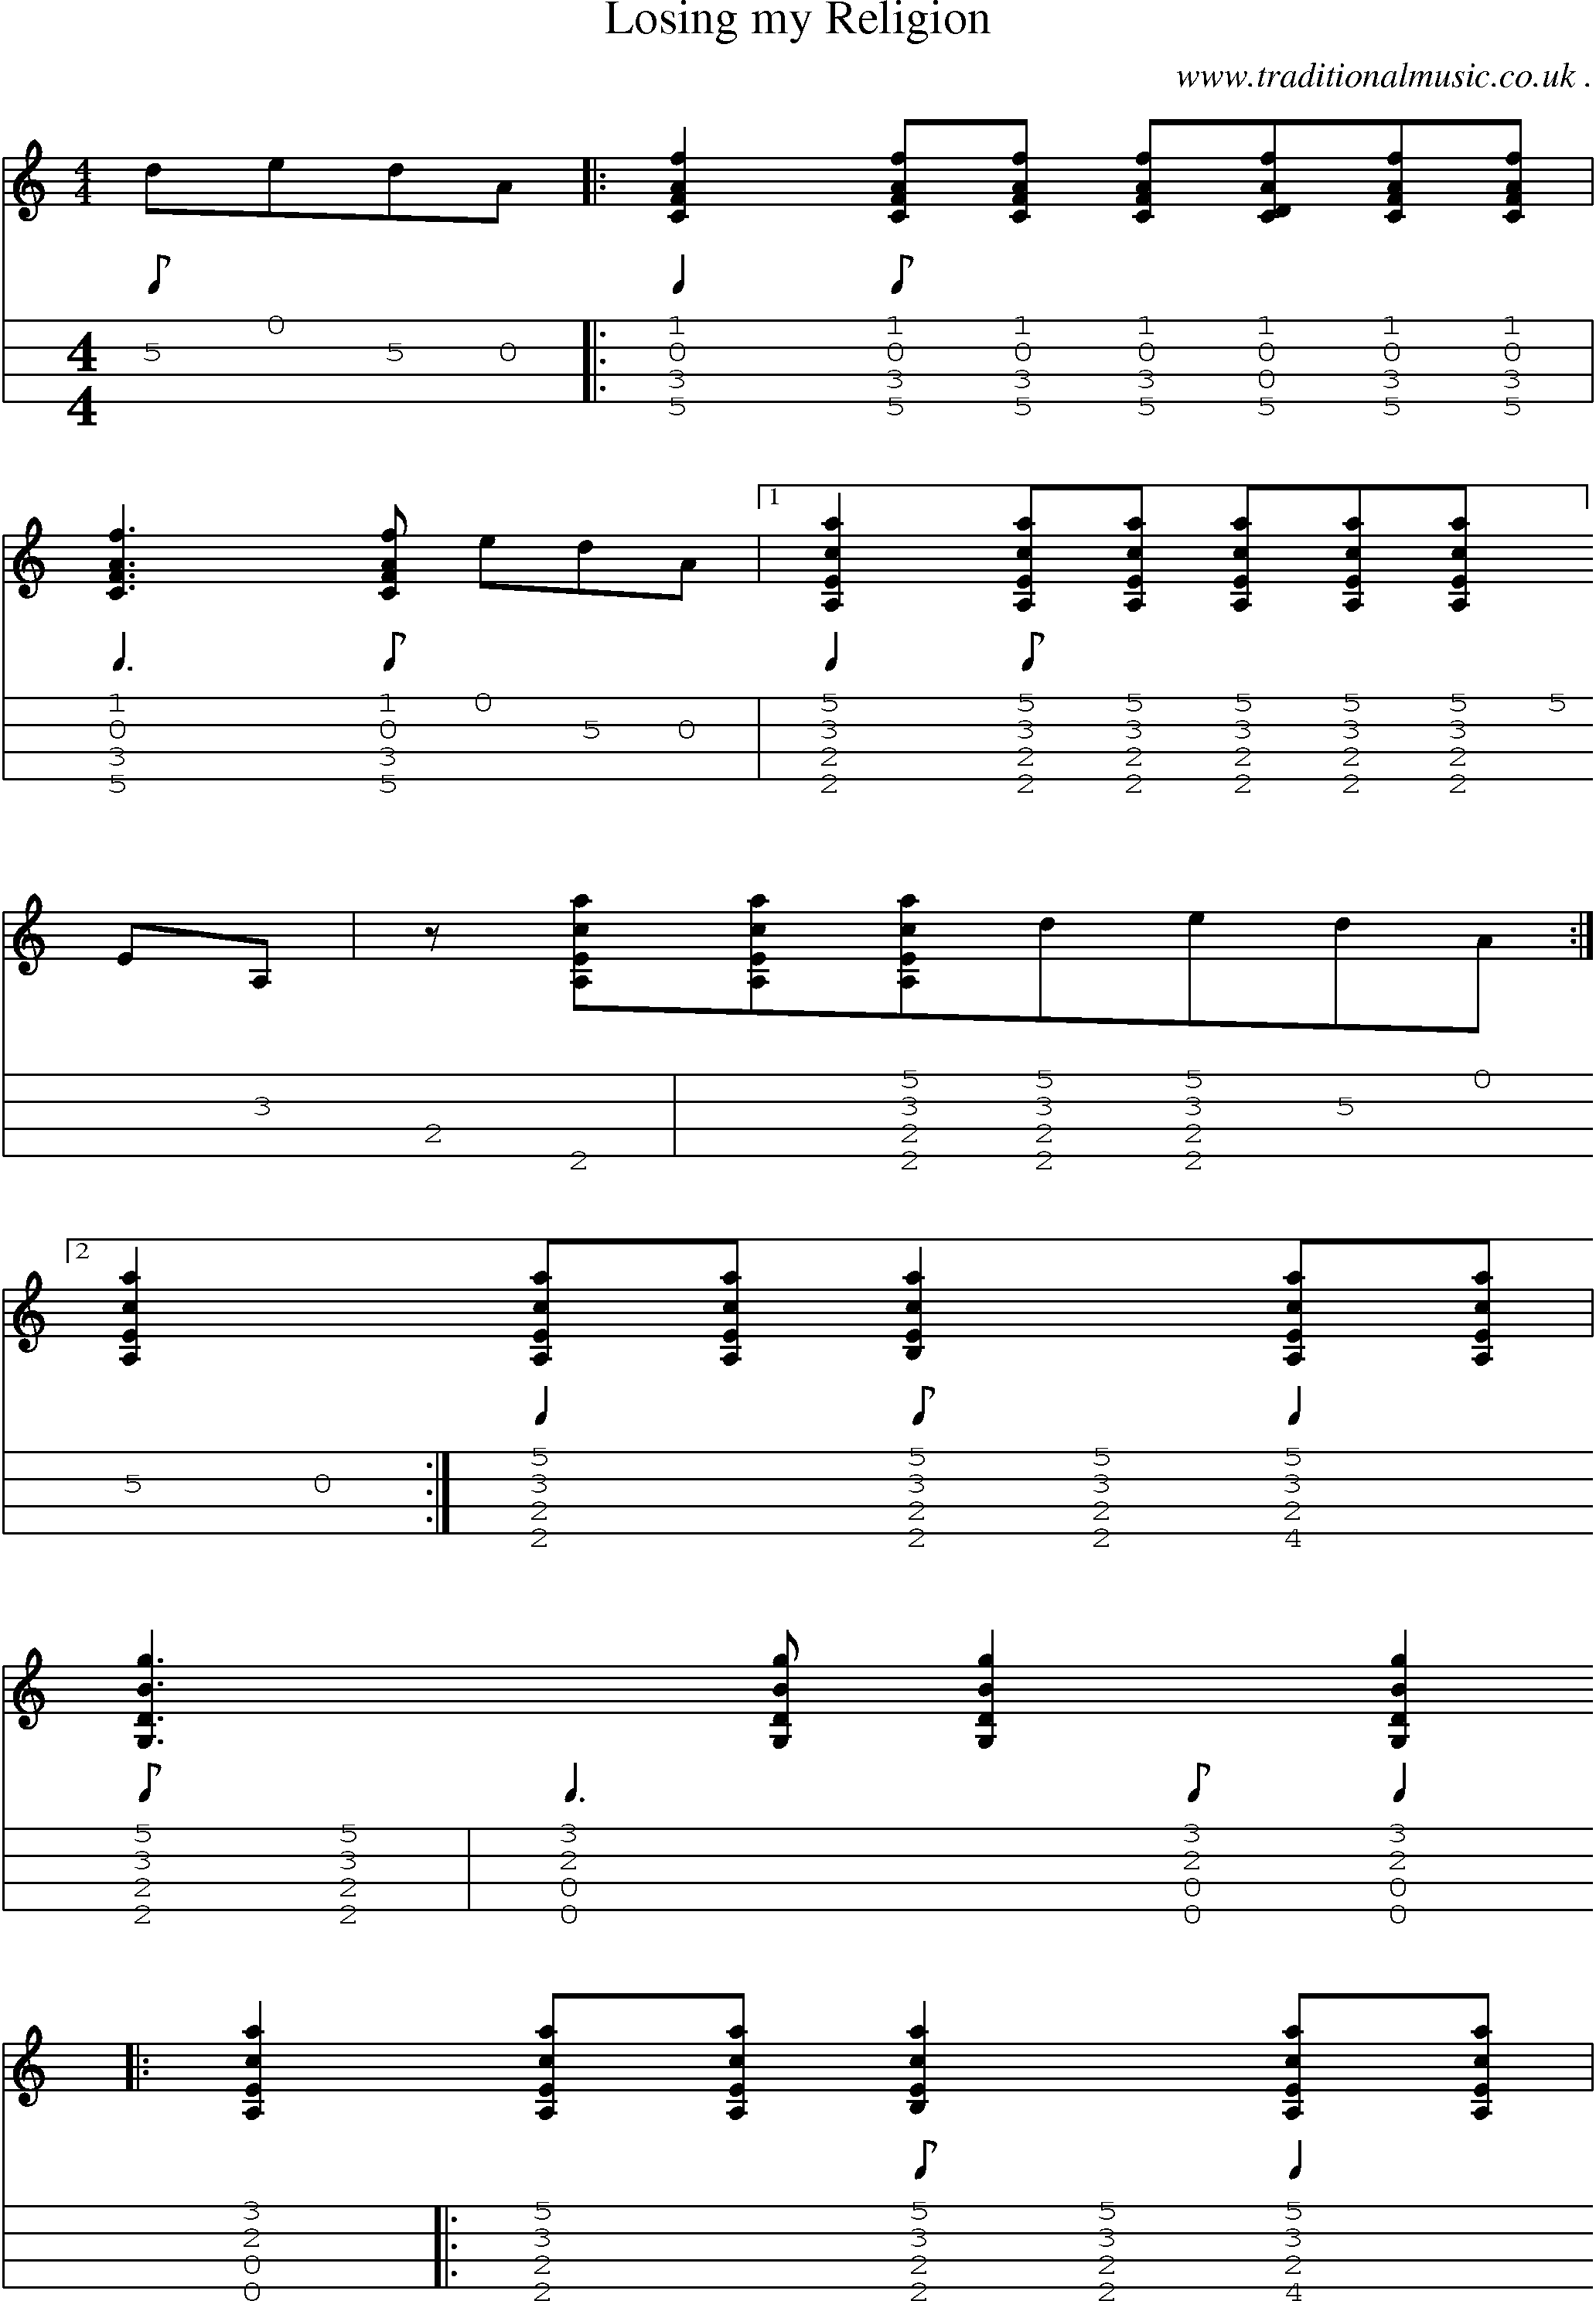 Music score and guitar tabs for losing my religion sheet music music score and guitar tabs for losing my religion hexwebz Images